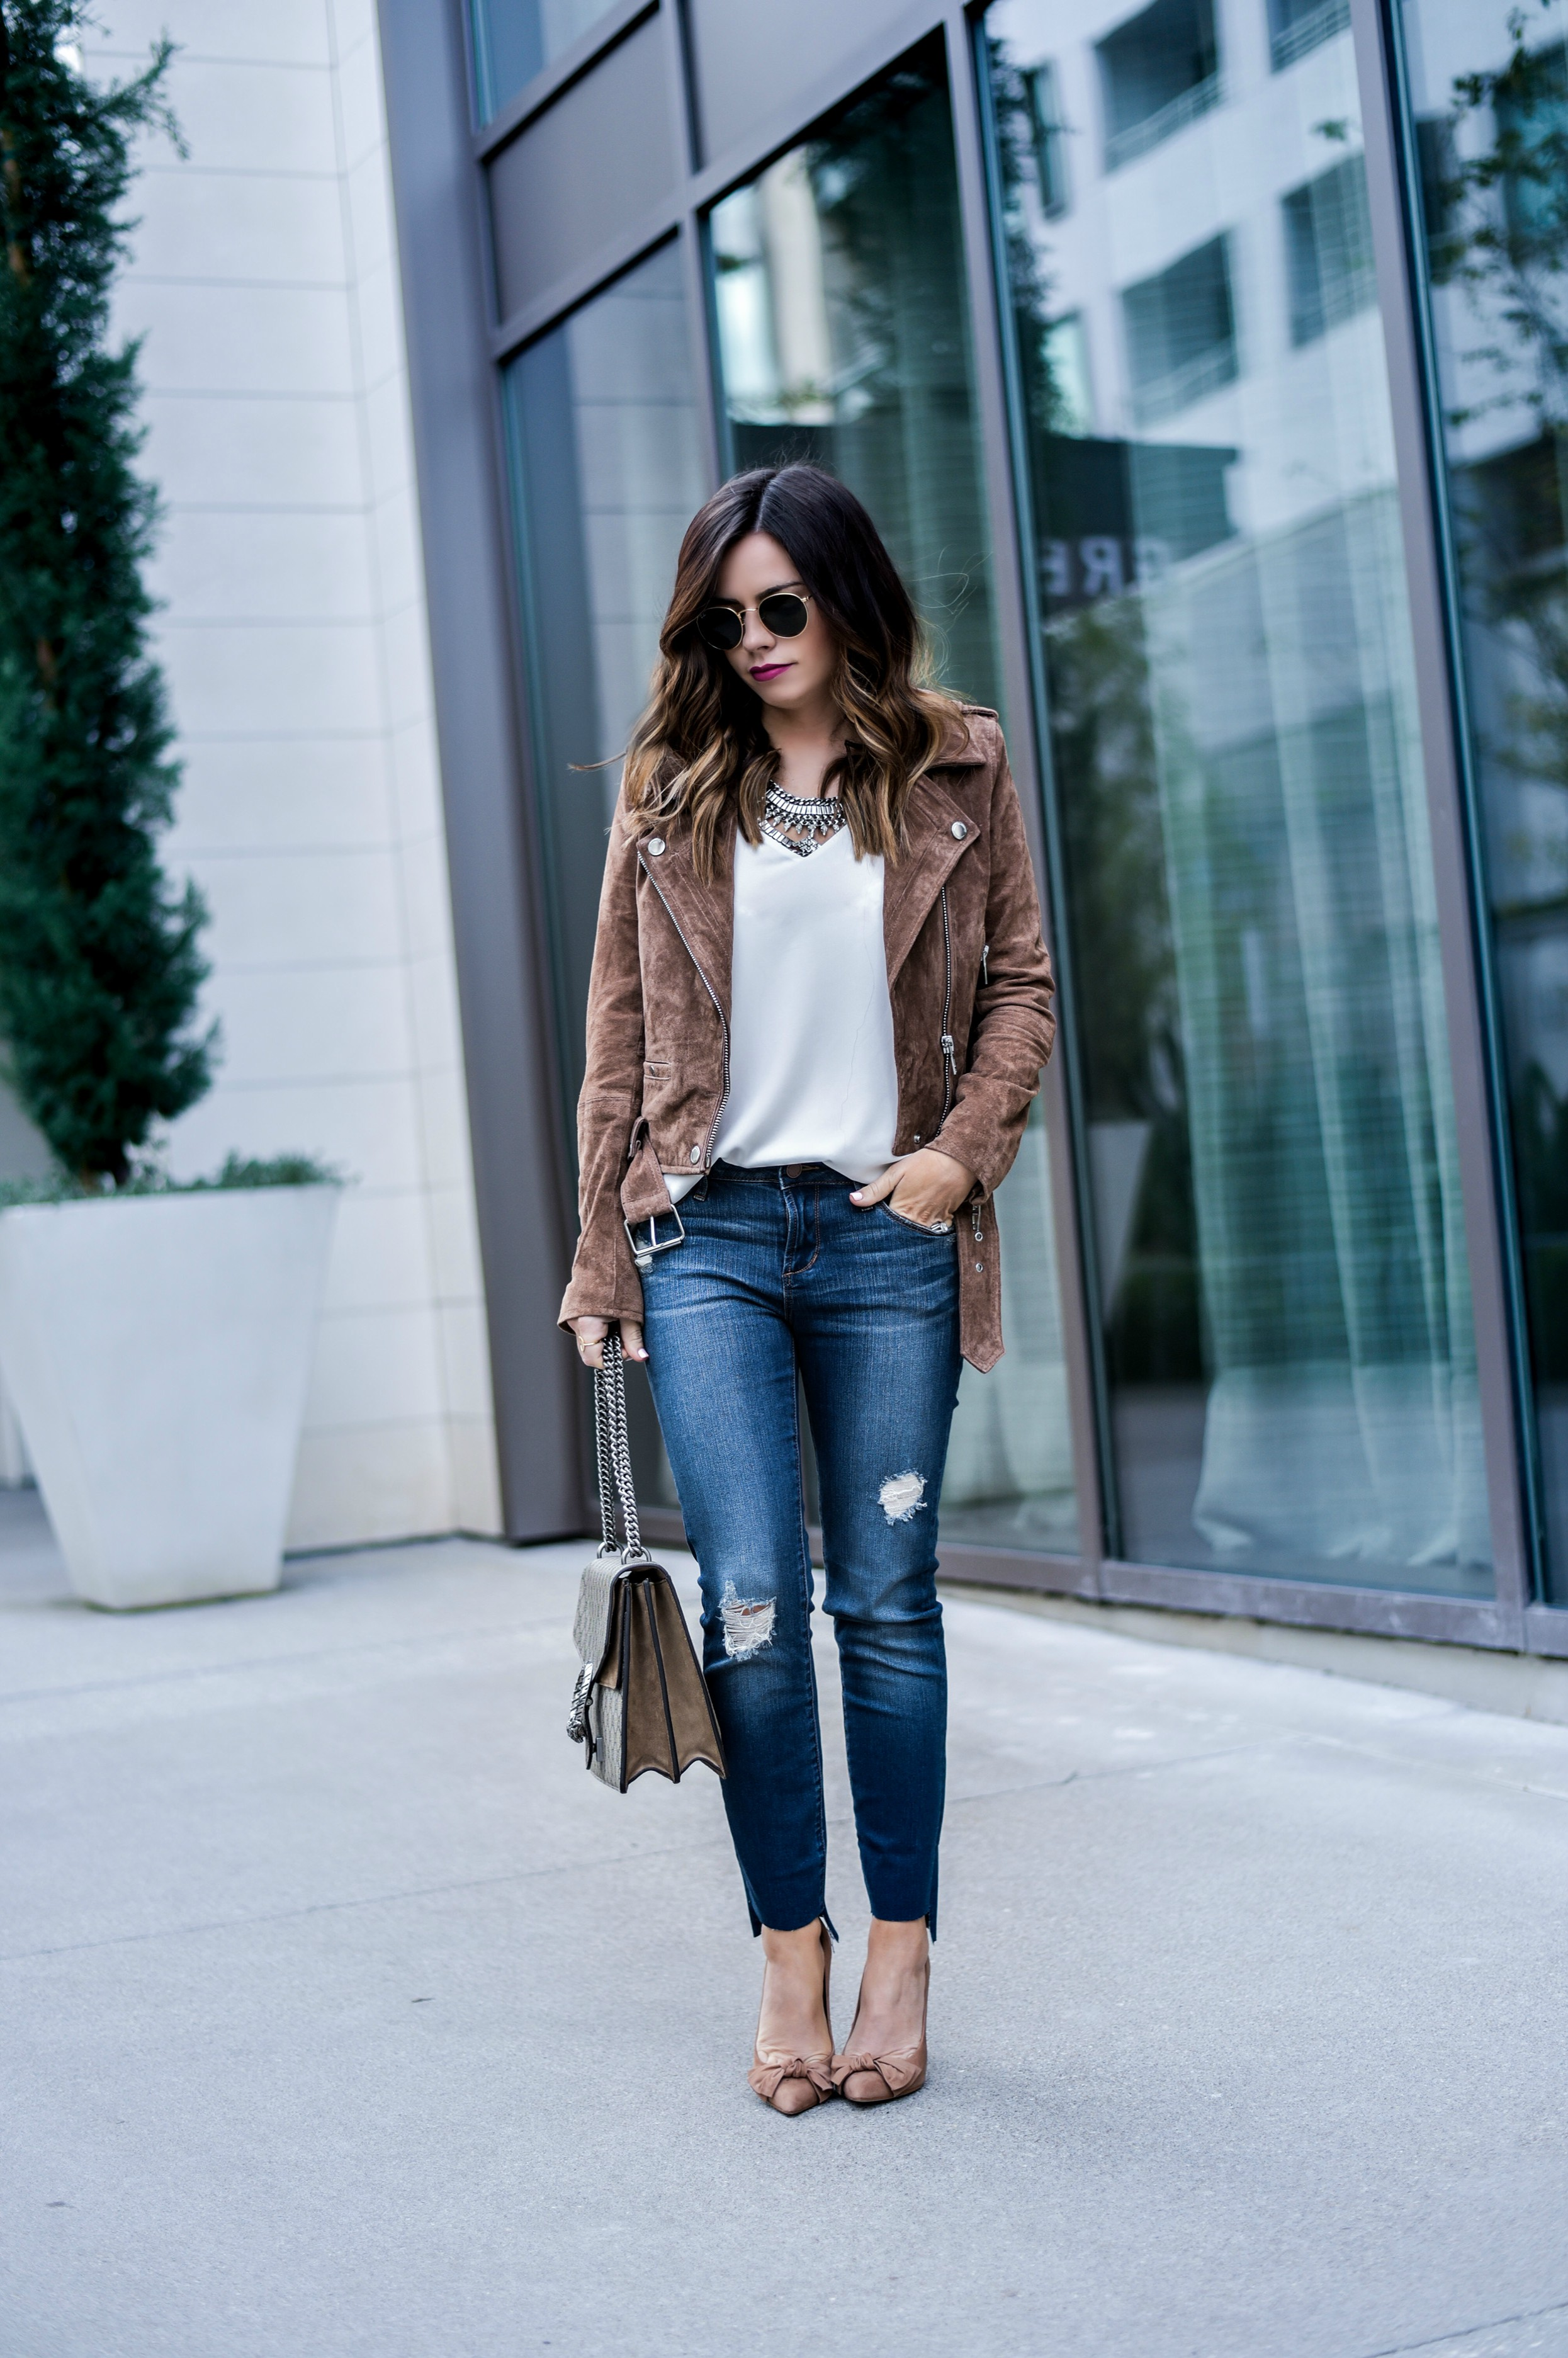 Style blogger Tiffany Jais of Flaunt and Center wearing a BLANKNYC moto jacket with Nordstrom jeans  